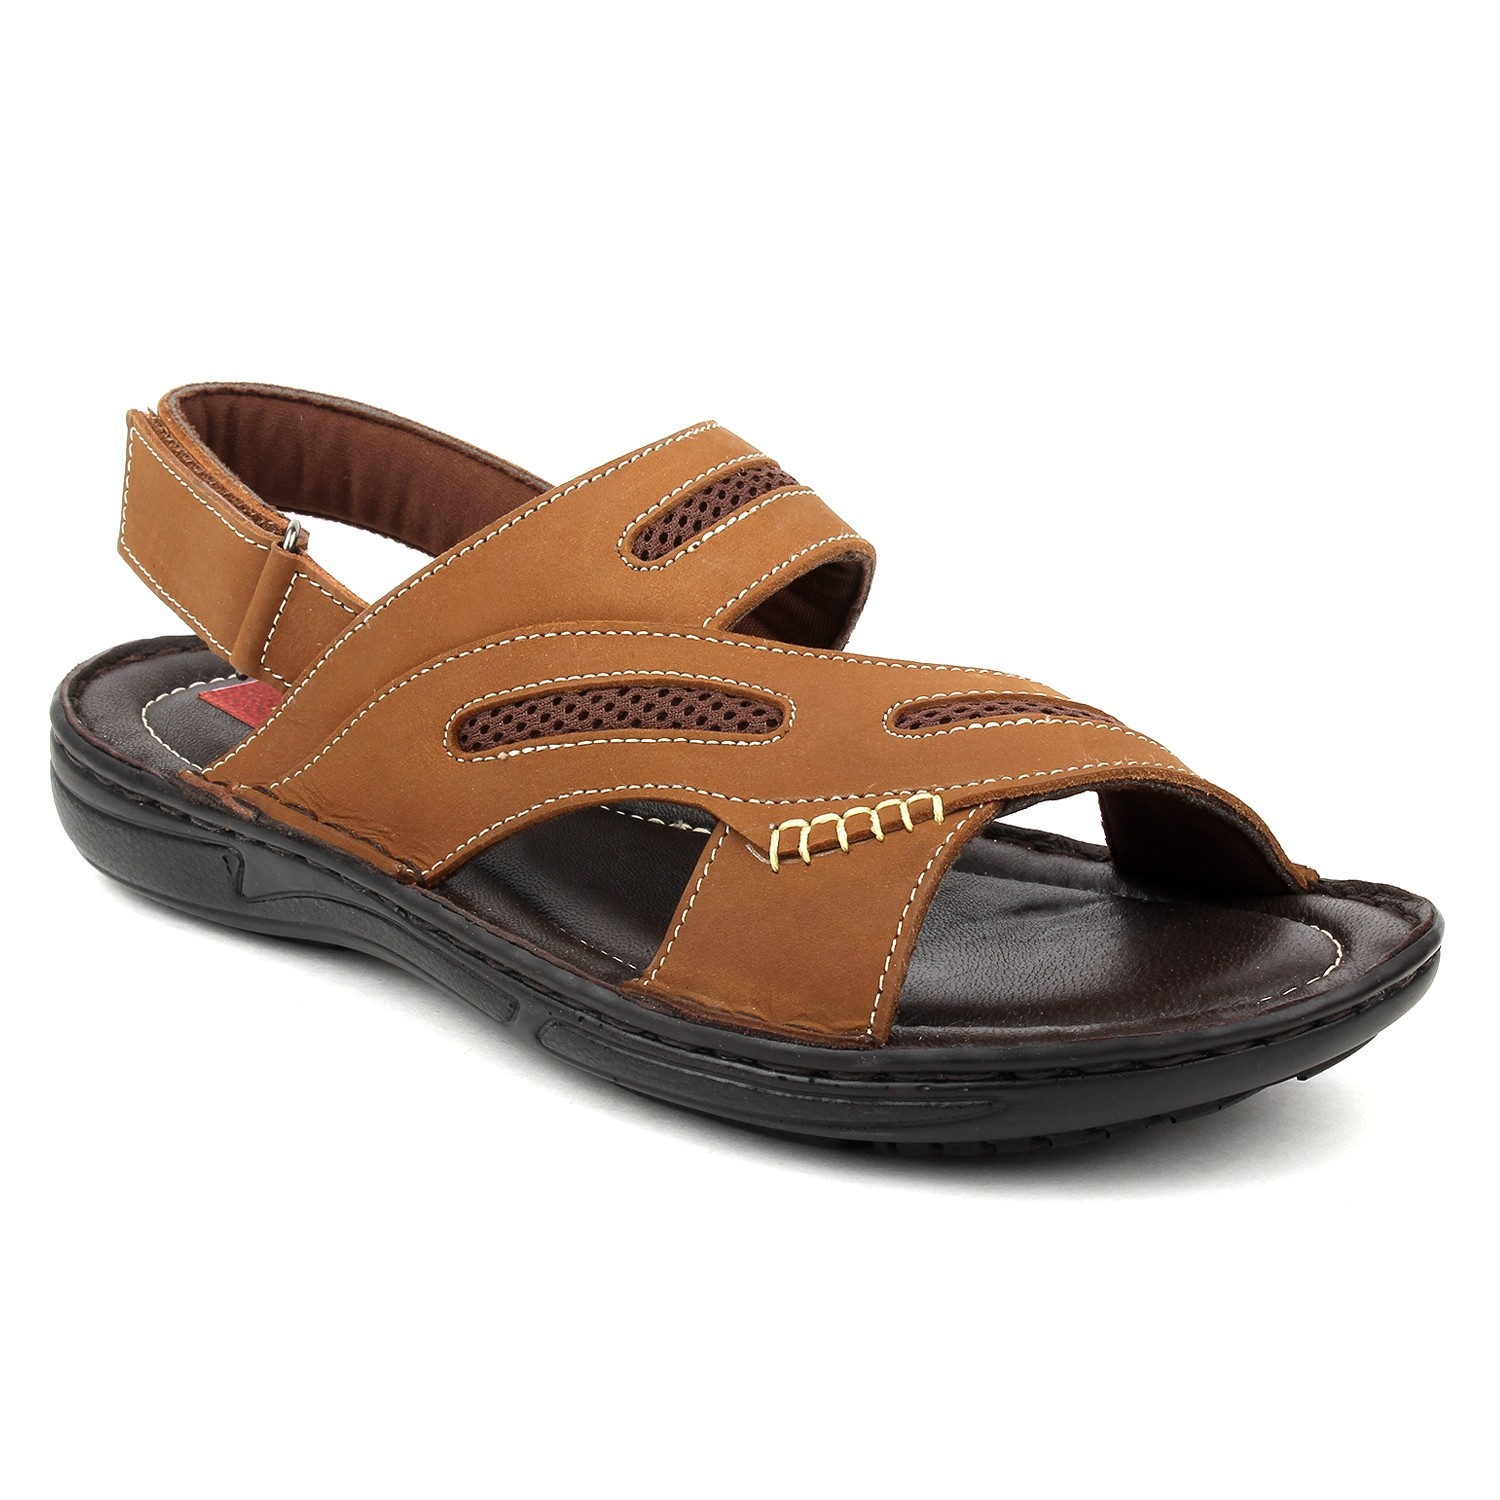 Sandal & Slipper -  KGS047